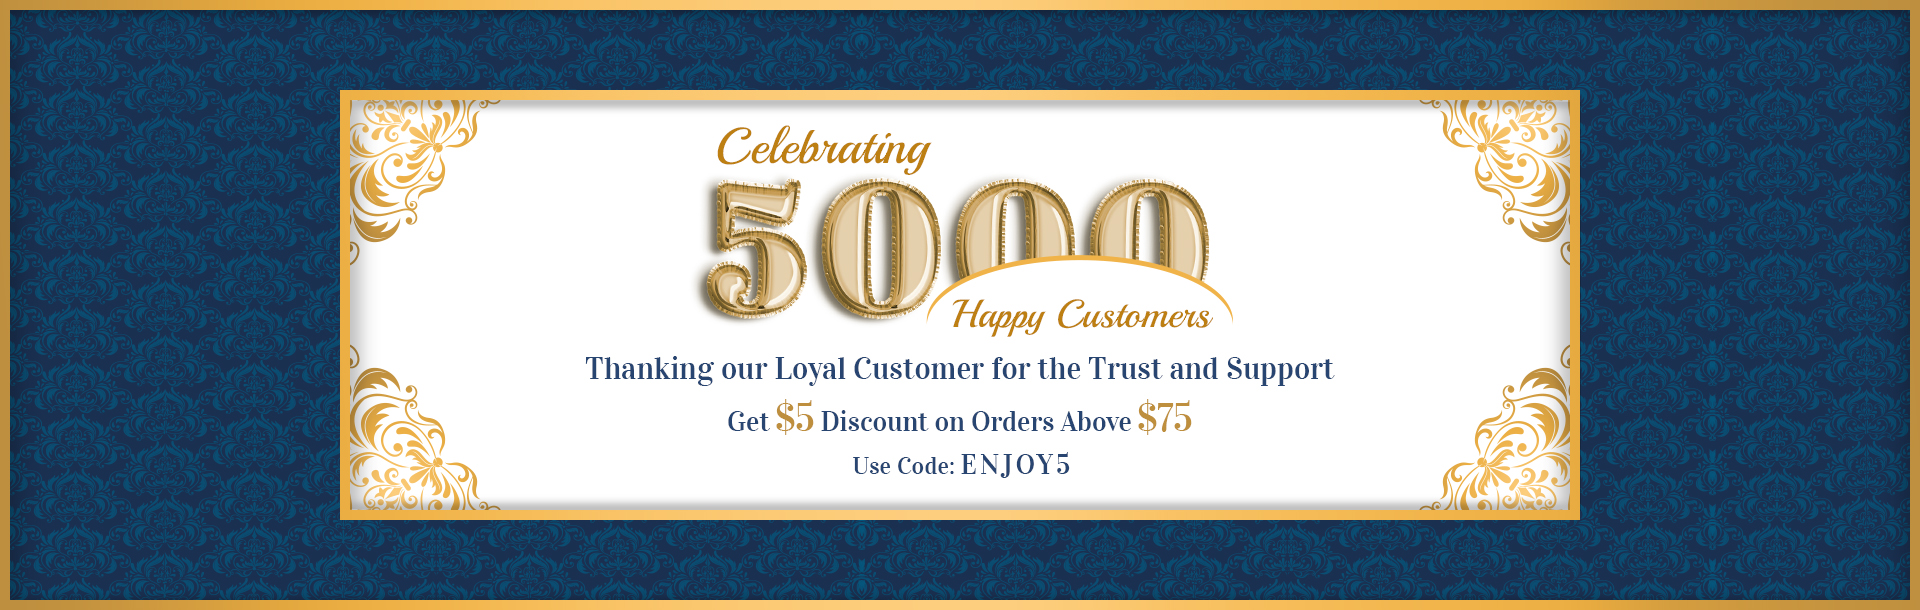 Celebrating 5000 Happy Customers. Get $5 Discount on Orders Above $75. Use Coupon Code ENJOY5